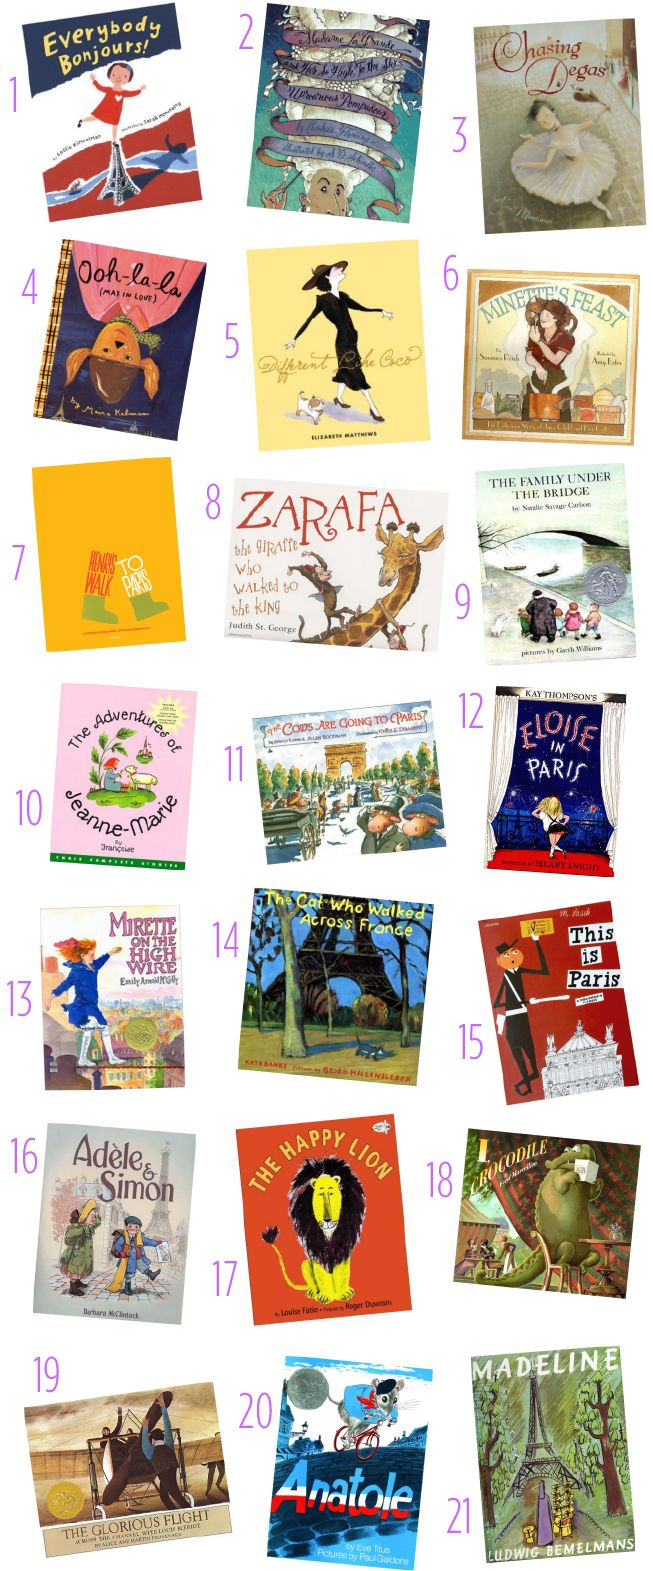 21 French Themed books via The Thirteenth Blog